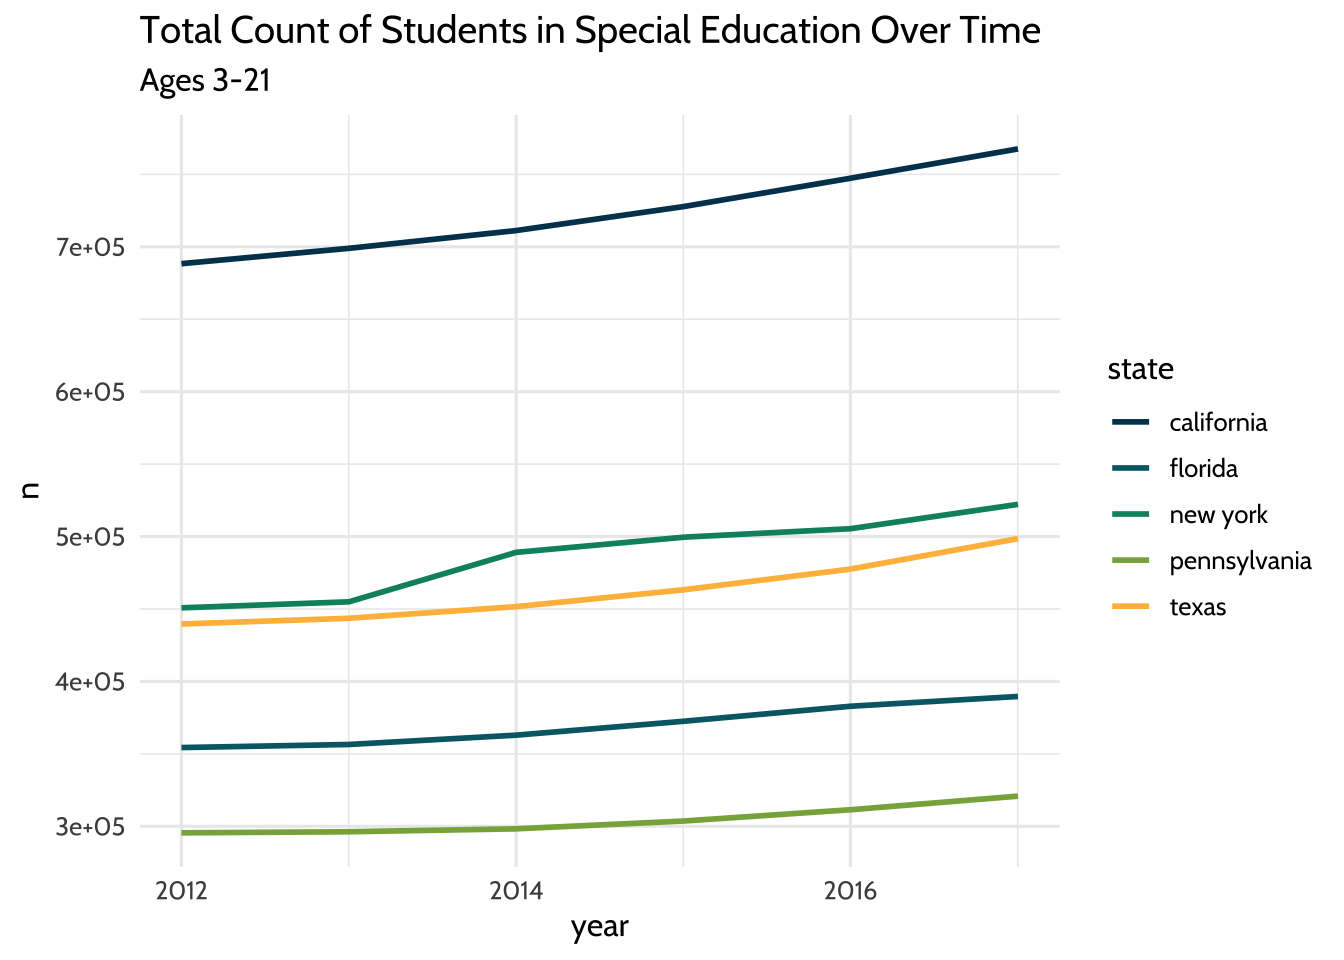 Total Count of Students in Special Education Over Time